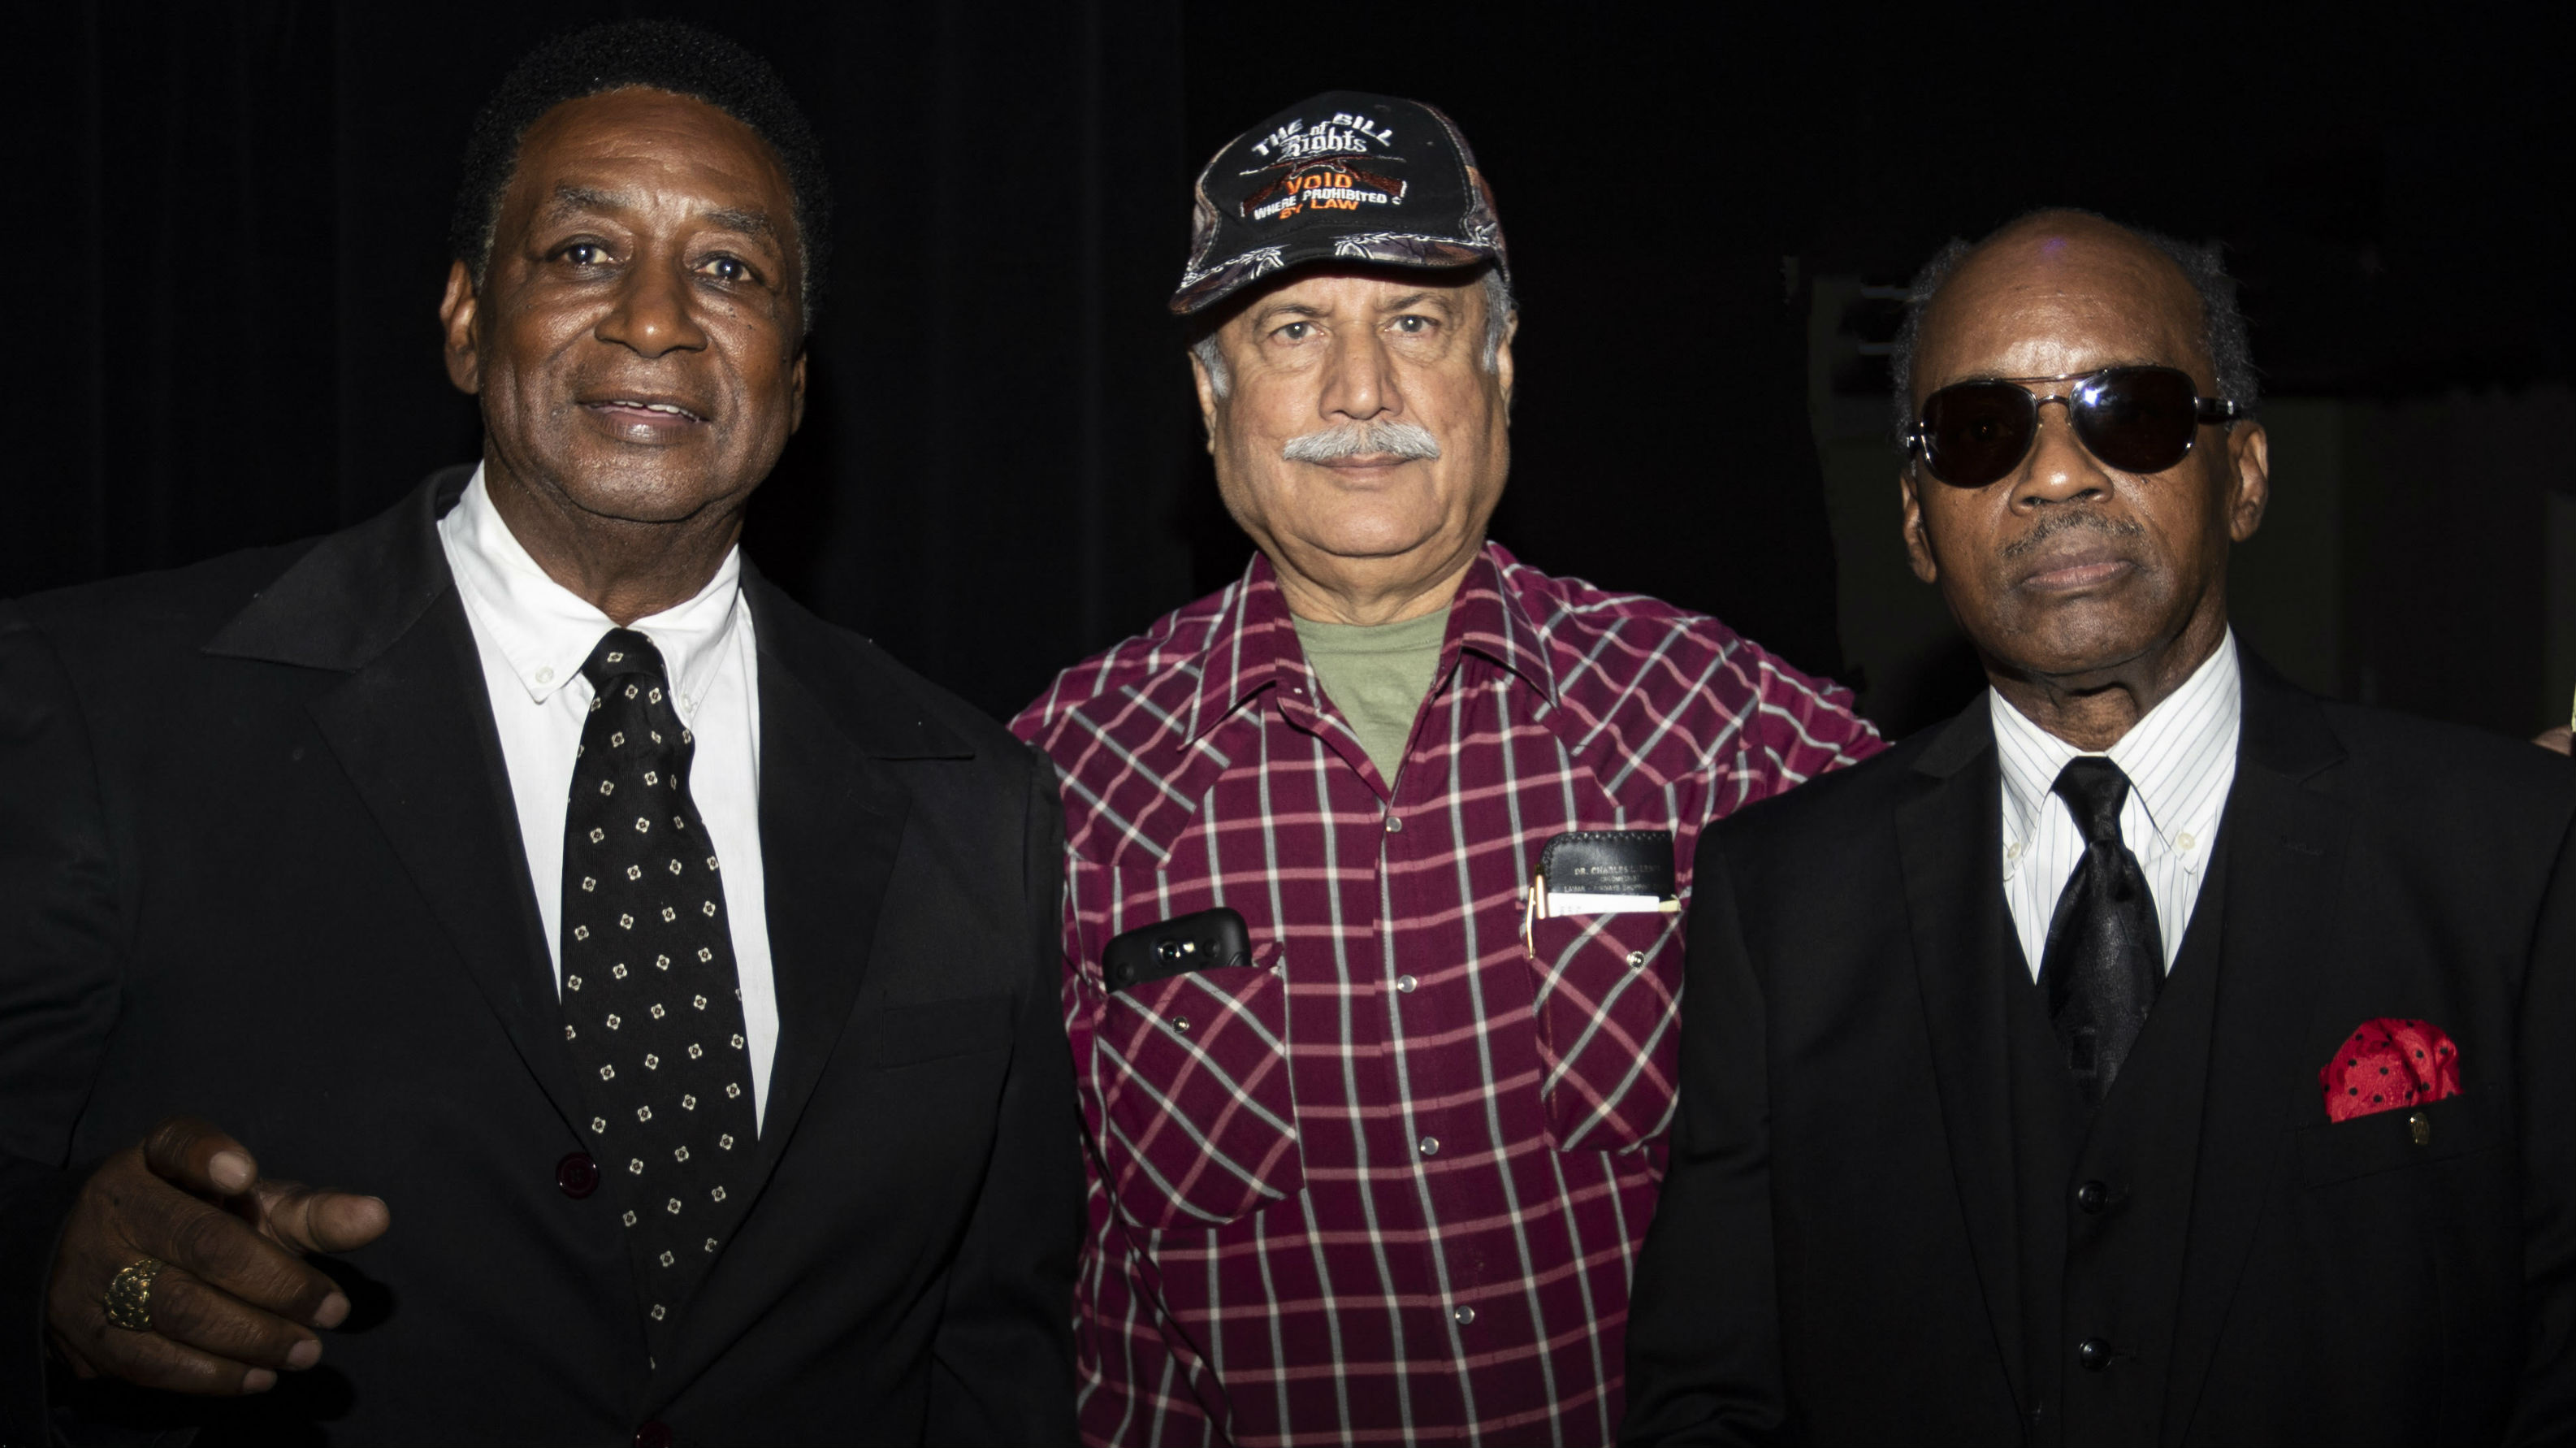 Latroy William, Arshad Khan, Muhammad Ziyad - September 11, 2019 @ Southern Heritage Galla/ MEMPHIS